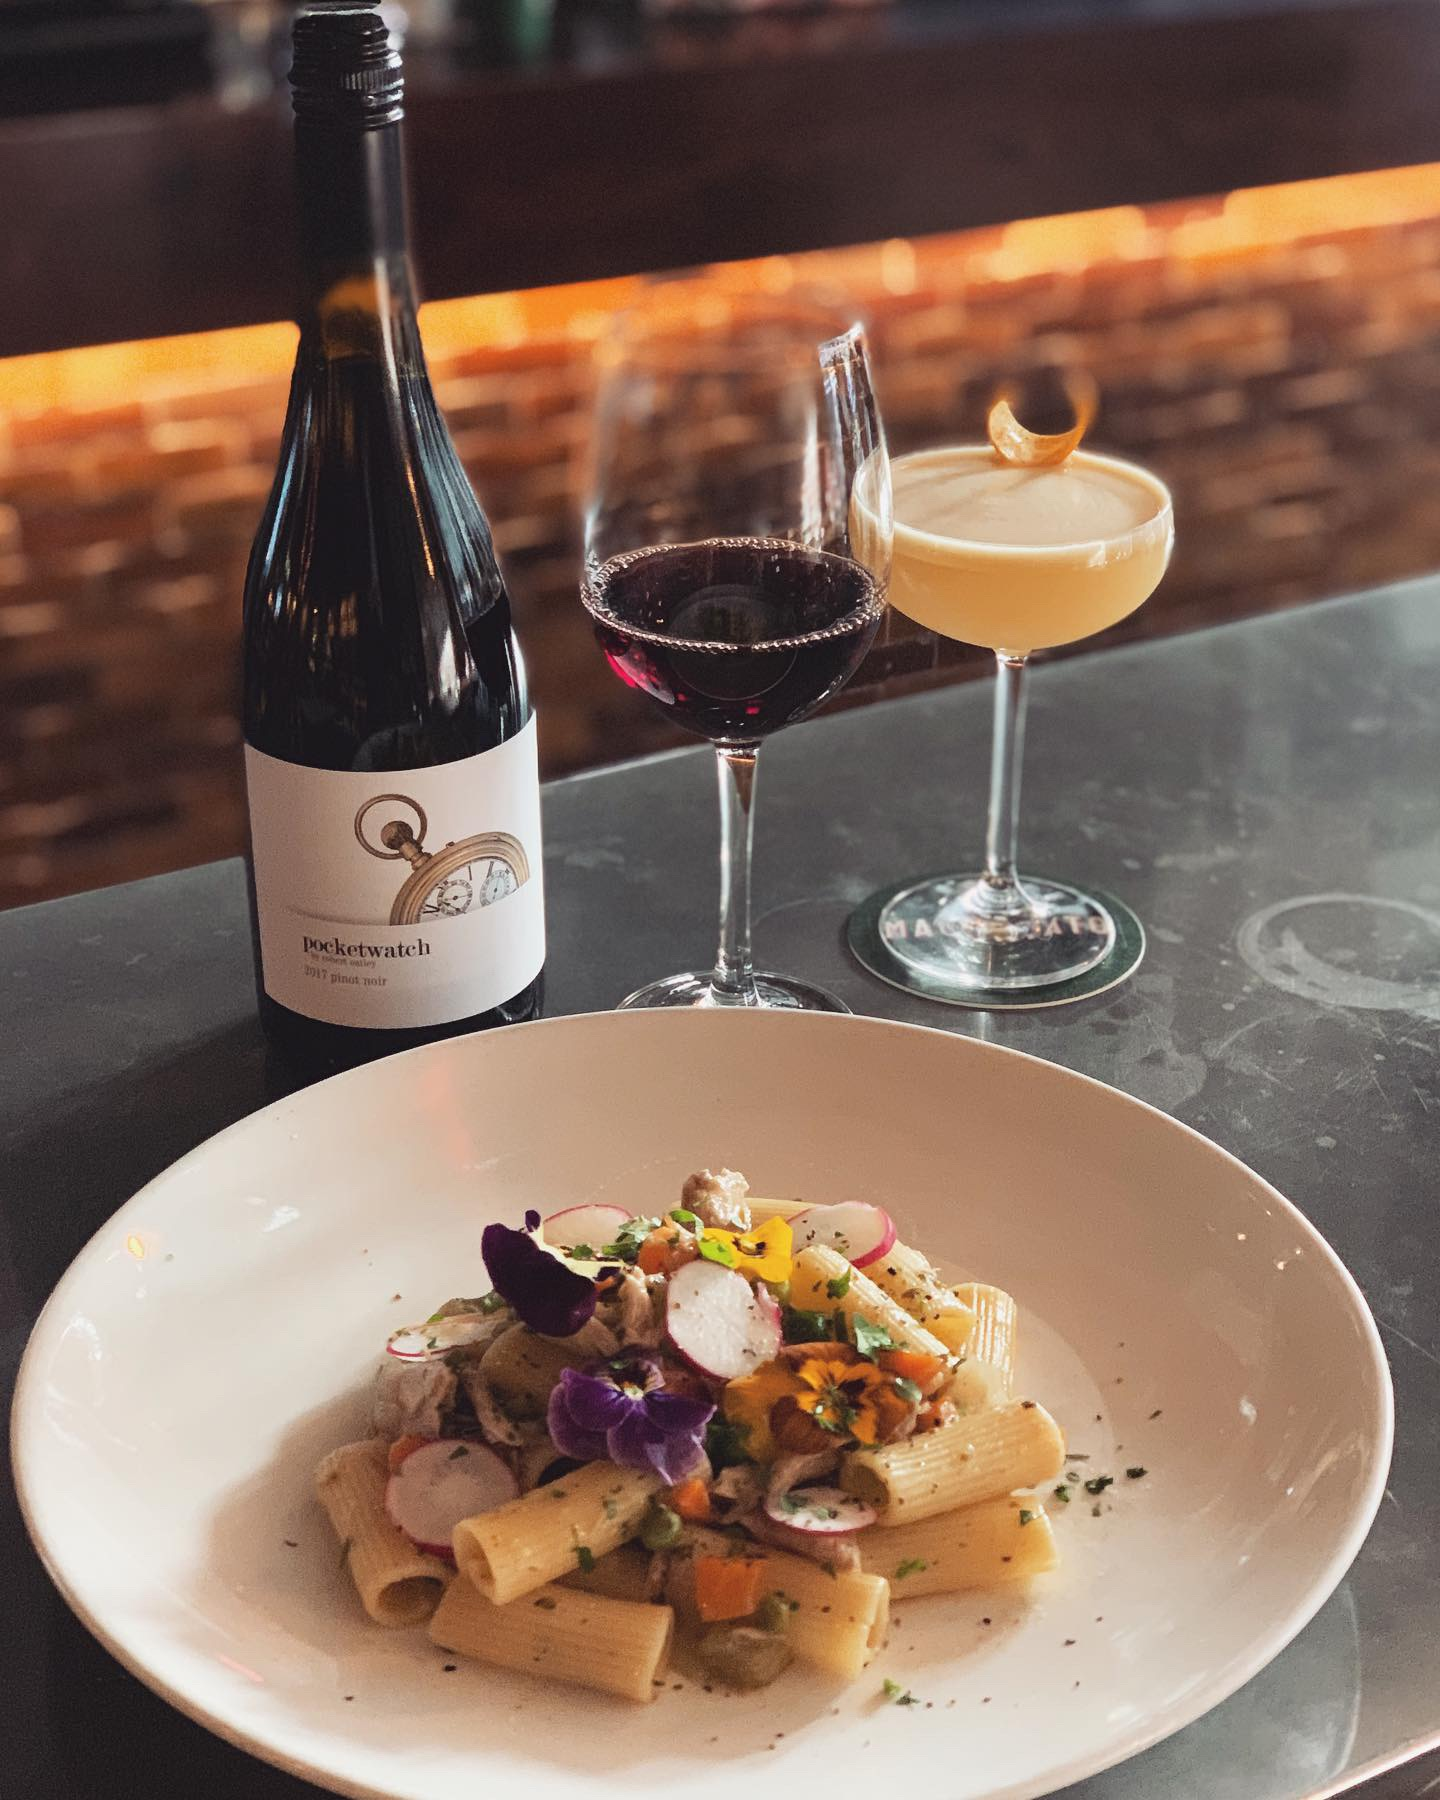 10-16 July - ~ RIGATONI AL RAGU' DI CONIGLIO ~.Wild rabbit ragout rigatoni with organic sweet peas, Pinot bianco and extra virgin olive oil..Perfectly matched with a light hearted glass of pinot noir 🍷.